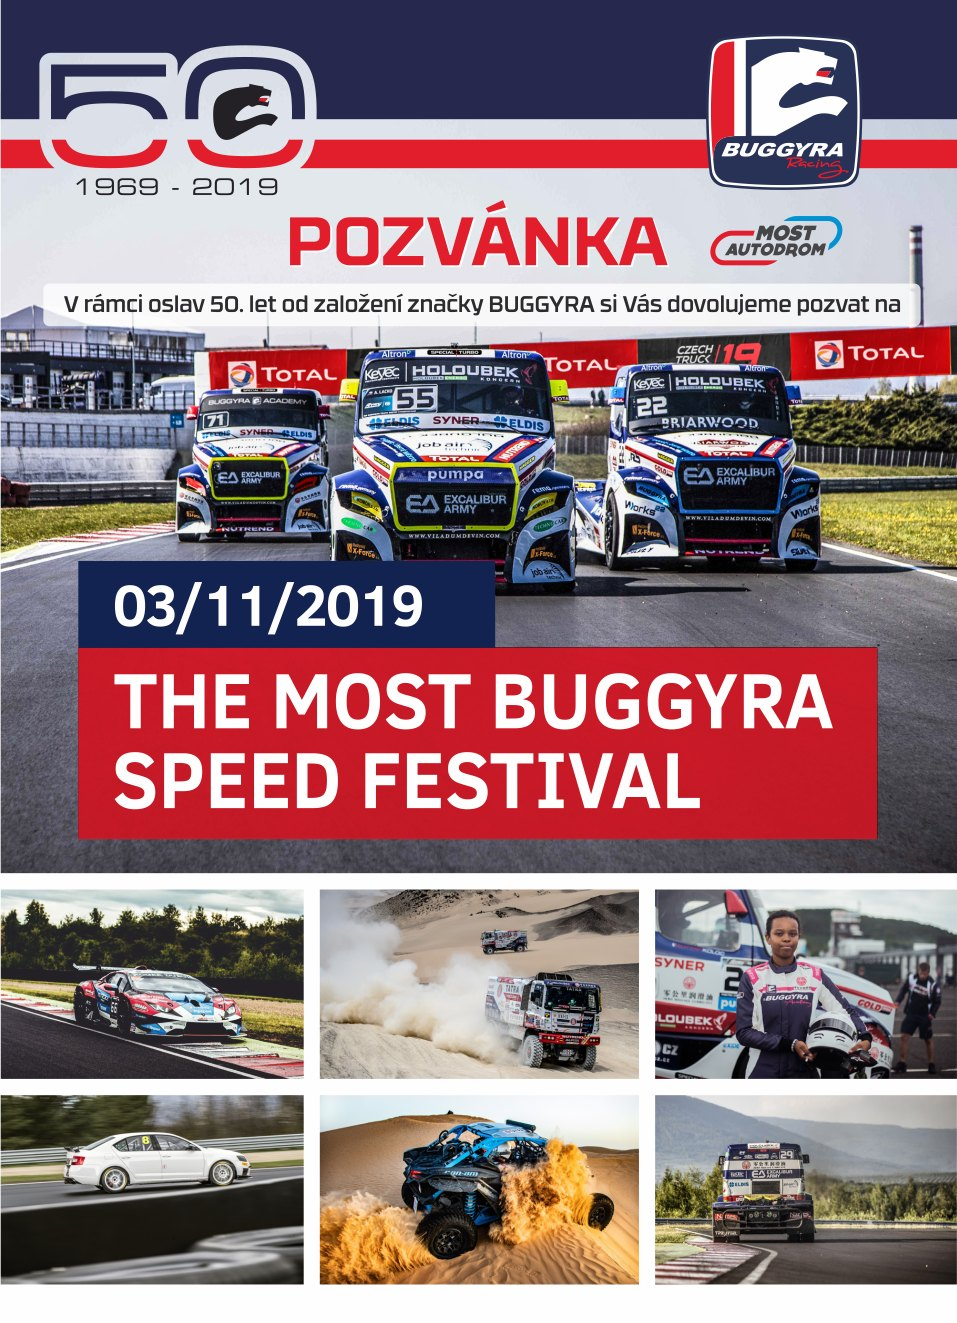 The Most Buggyra speed festival